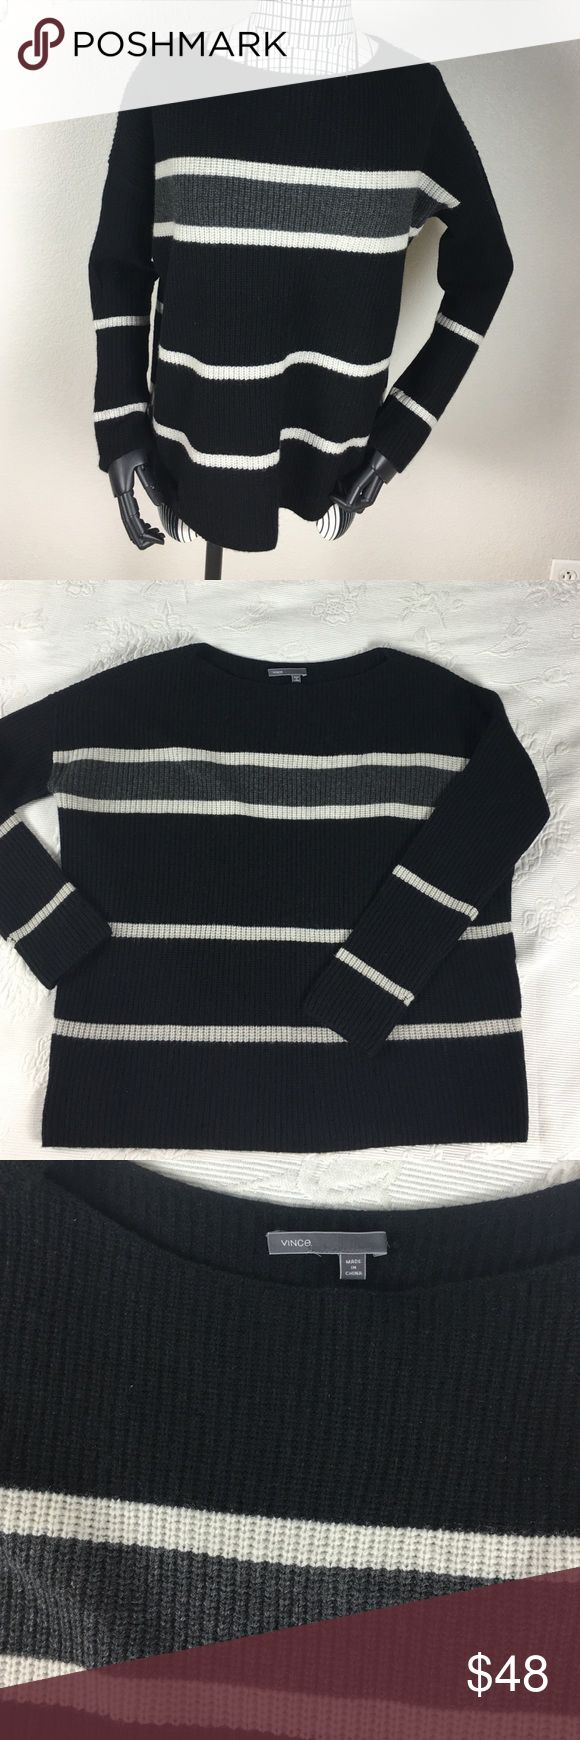 "Vince Boxy Striped Sweater NWOT Classic sweater very soft.  Body is boxy and arms are tighter.  Size and material tags are missing.  So I am estimating the size to be medium and material to be a cashmere wool blend.  24"" pit to pit and 24"" length. Boat neck.  Very soft.  I got these at the Vince Outlet store in Las Vegas for a deal and I'm passing it on. Kept one for myself, I normally wear a small and this style works fine for a variety of sizes. Vince Sweaters Crew & Scoop Necks"